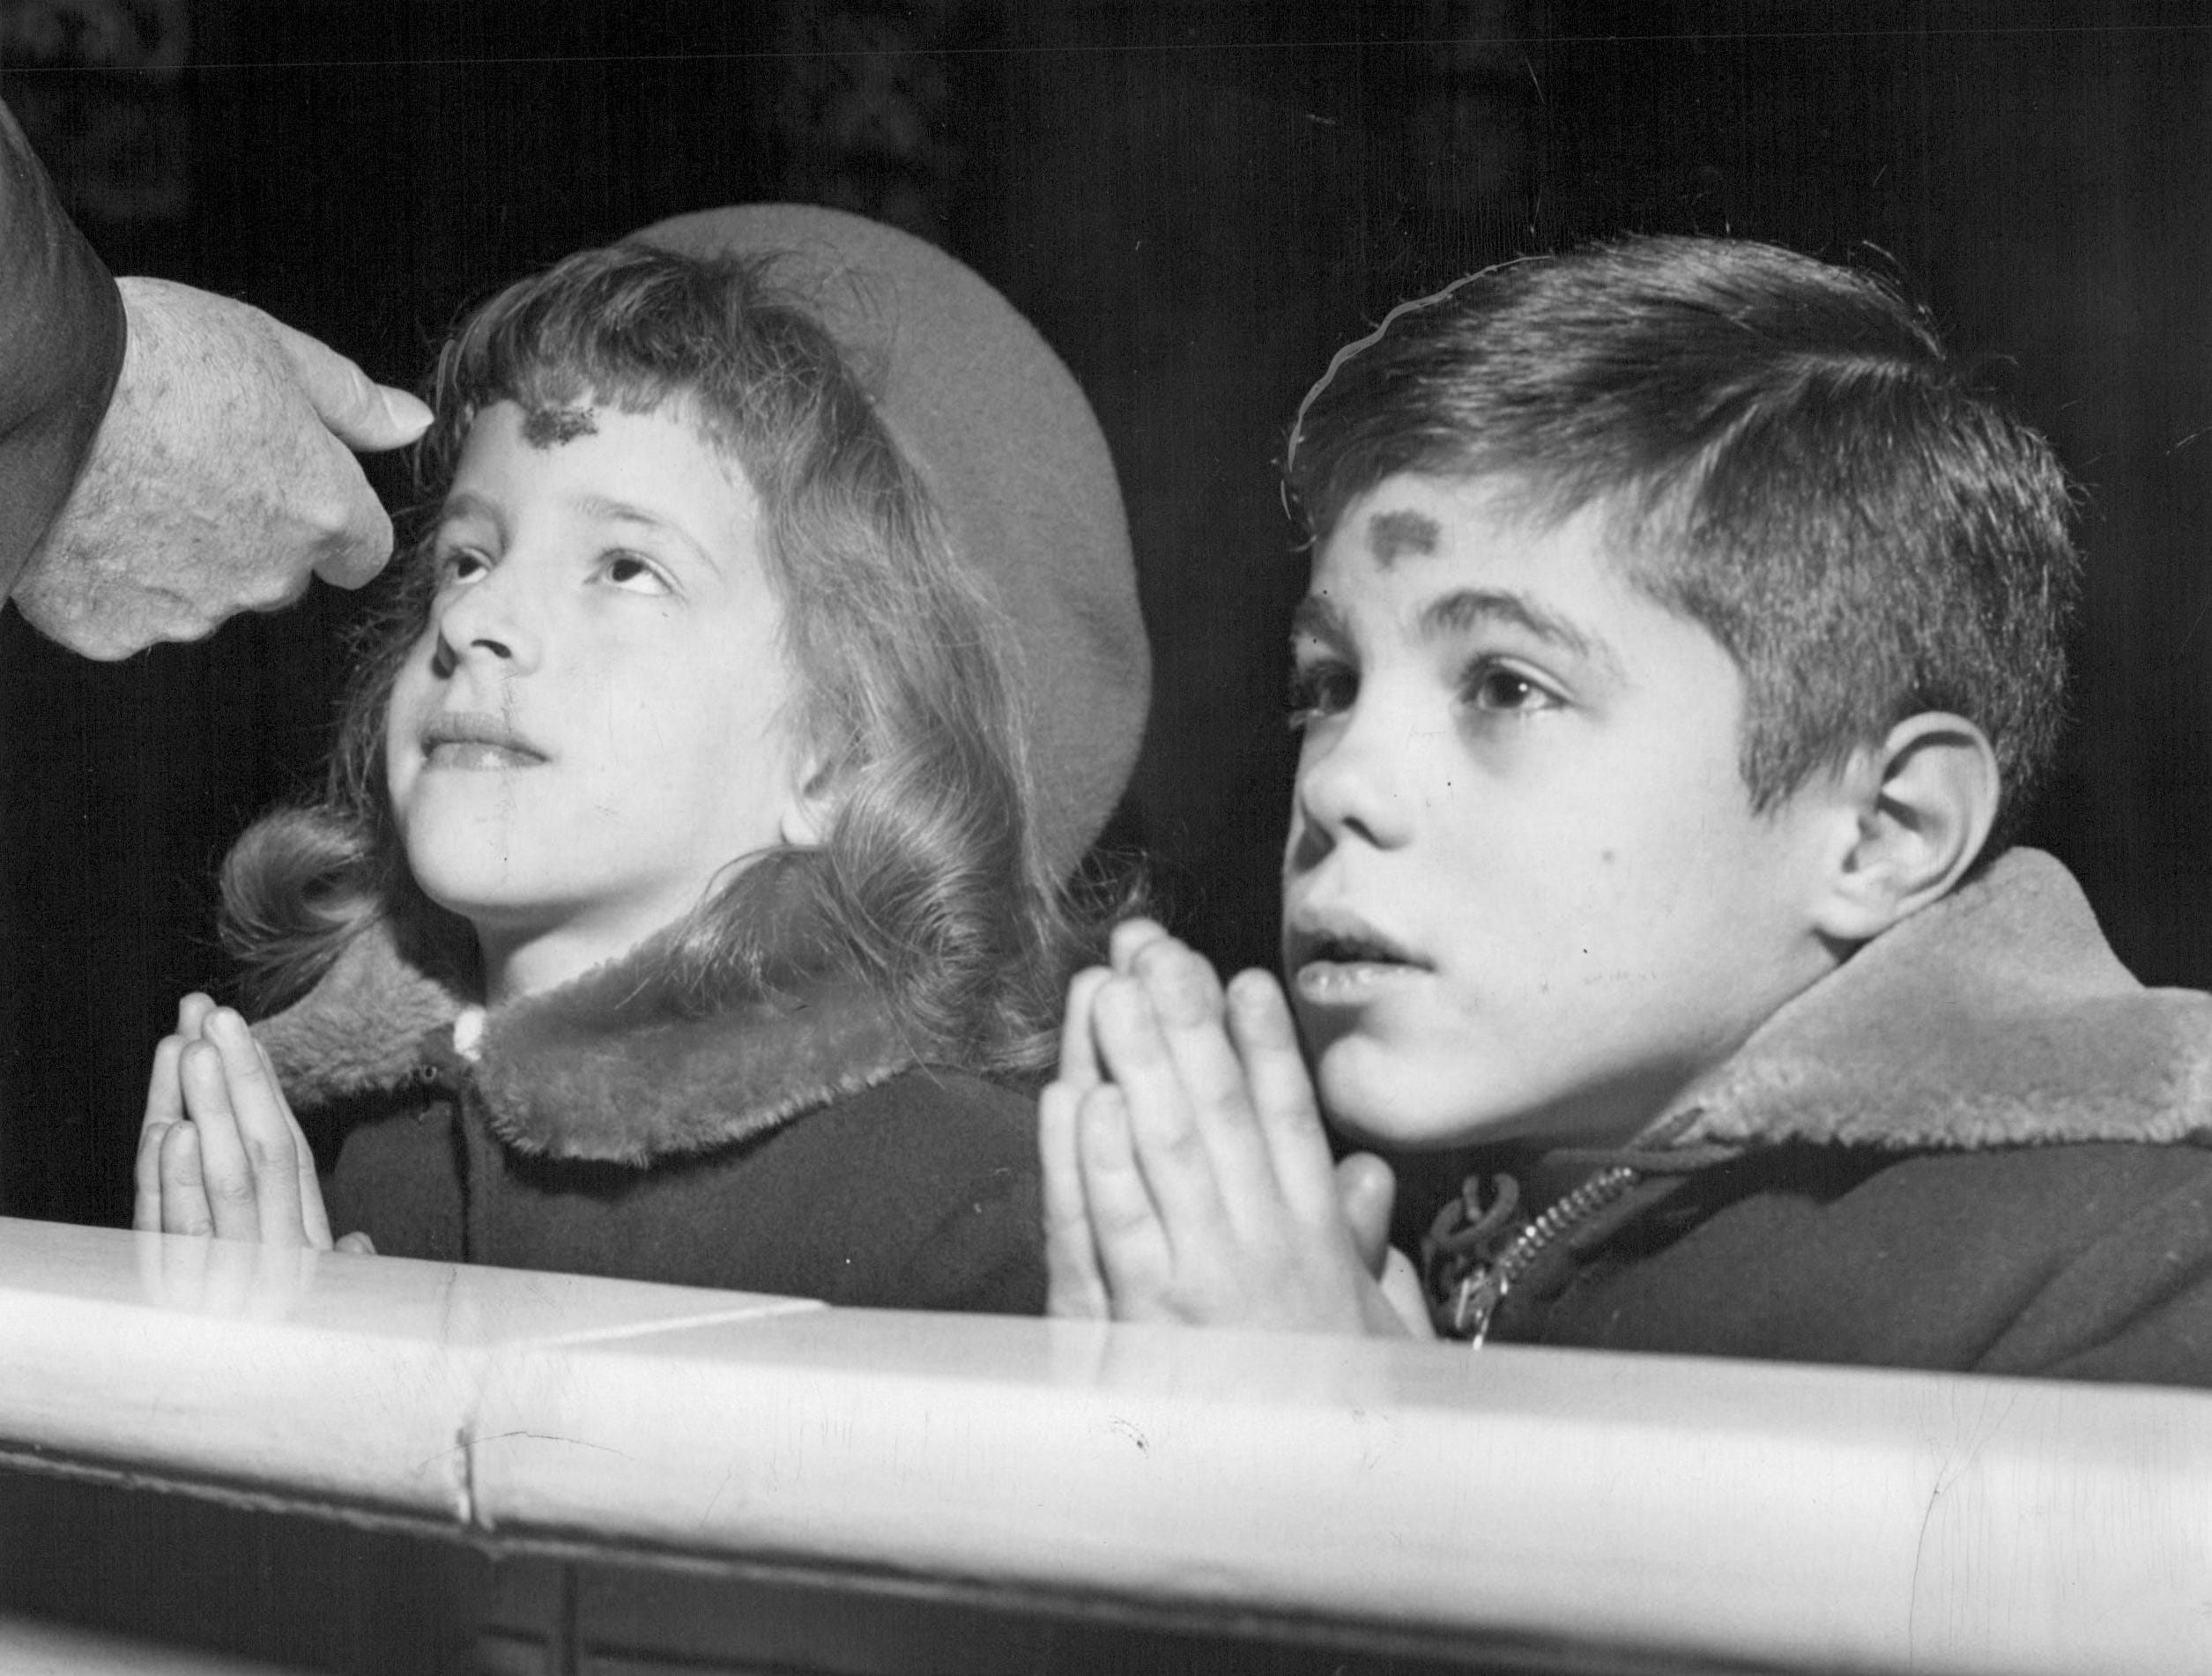 In this photo from 1960, Betsy Auble, 7, and Robert Pesar, 7, kneel to receive cross of ashes on their foreheads from Msgr. Gerald C. Lambert in St. Monica's Church as Ash Wednesday begins Lent.